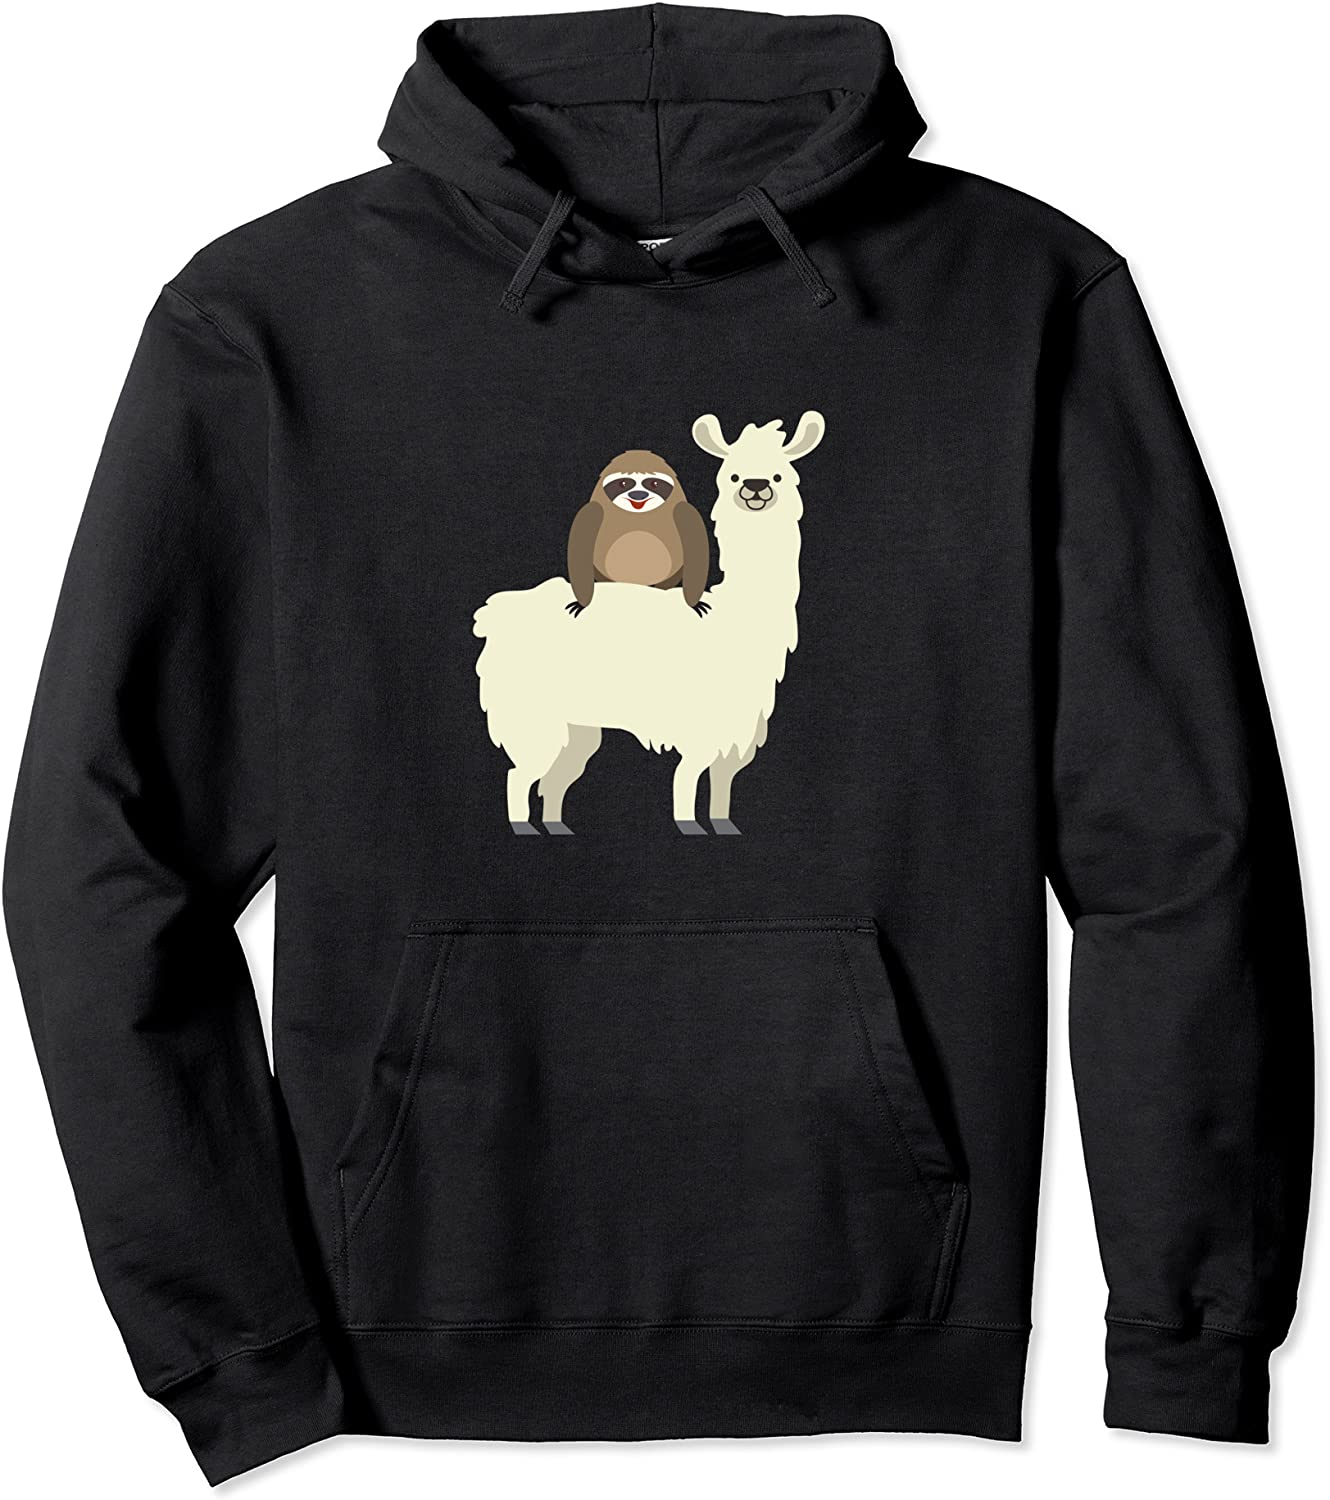 Long Beach Mall Japan's largest assortment Cute Funny Sloth Riding Hoodie Pullover Llama